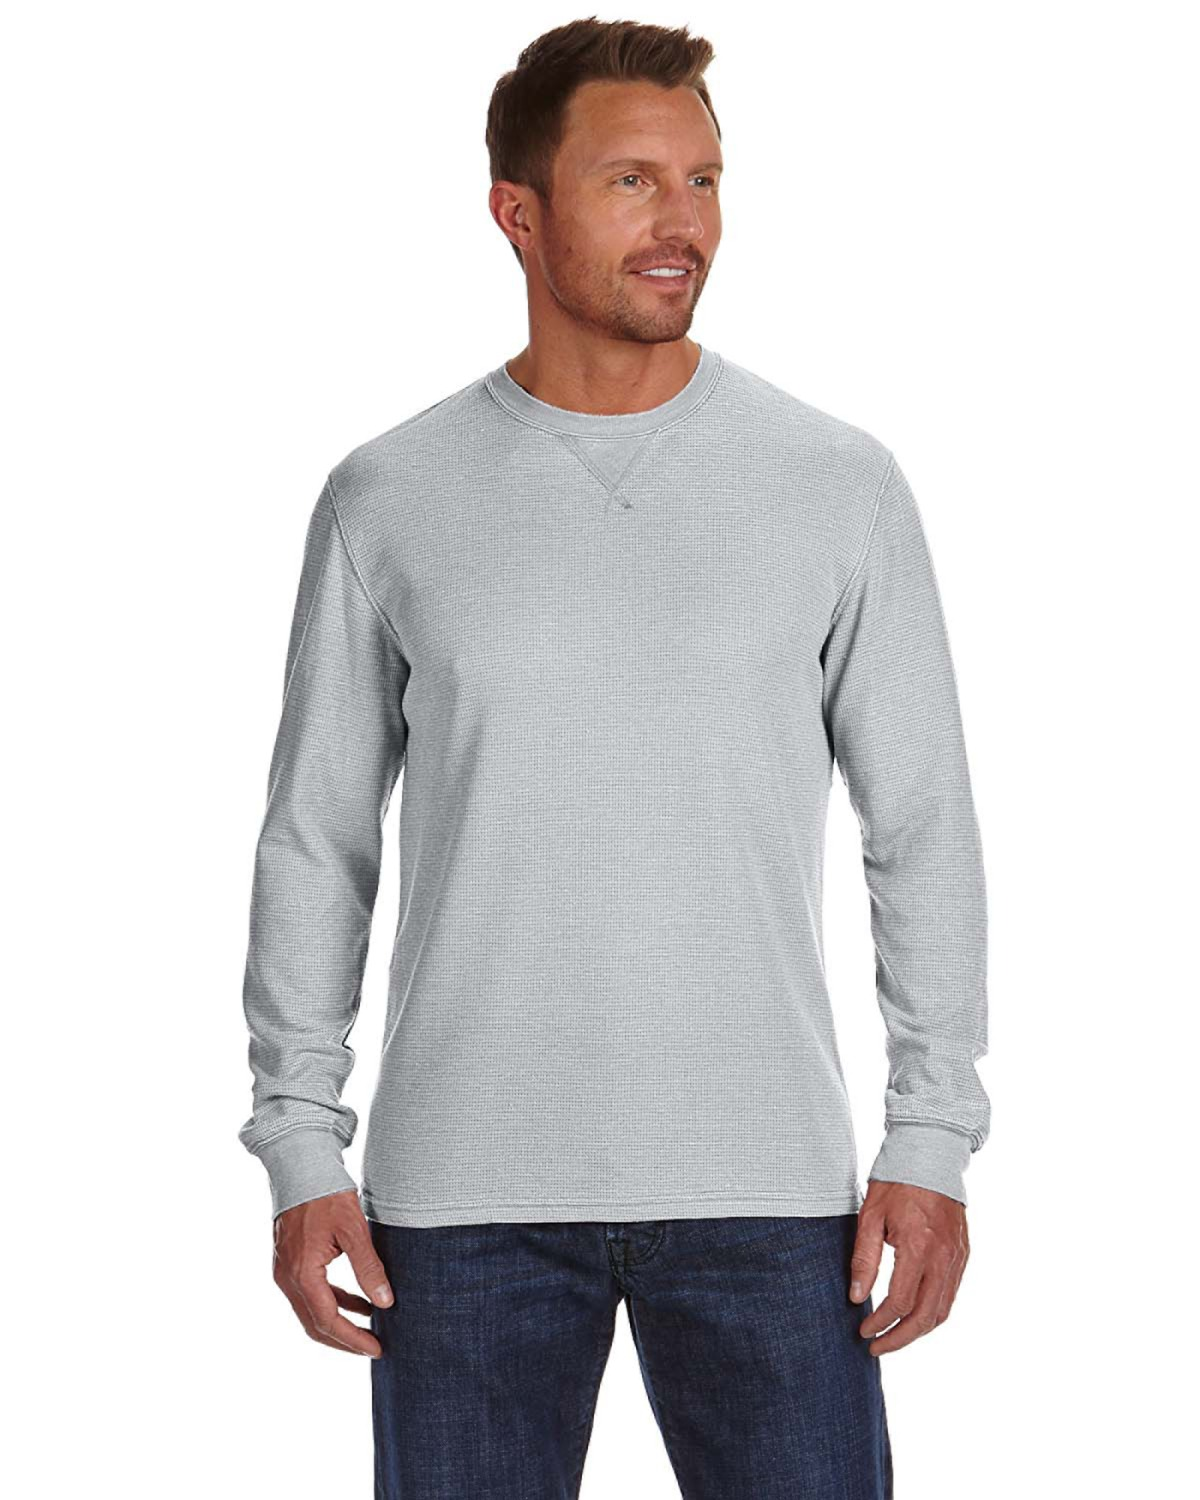 J America JA8241 - Vintage Zen Thermal Long-Sleeve T-Shirt